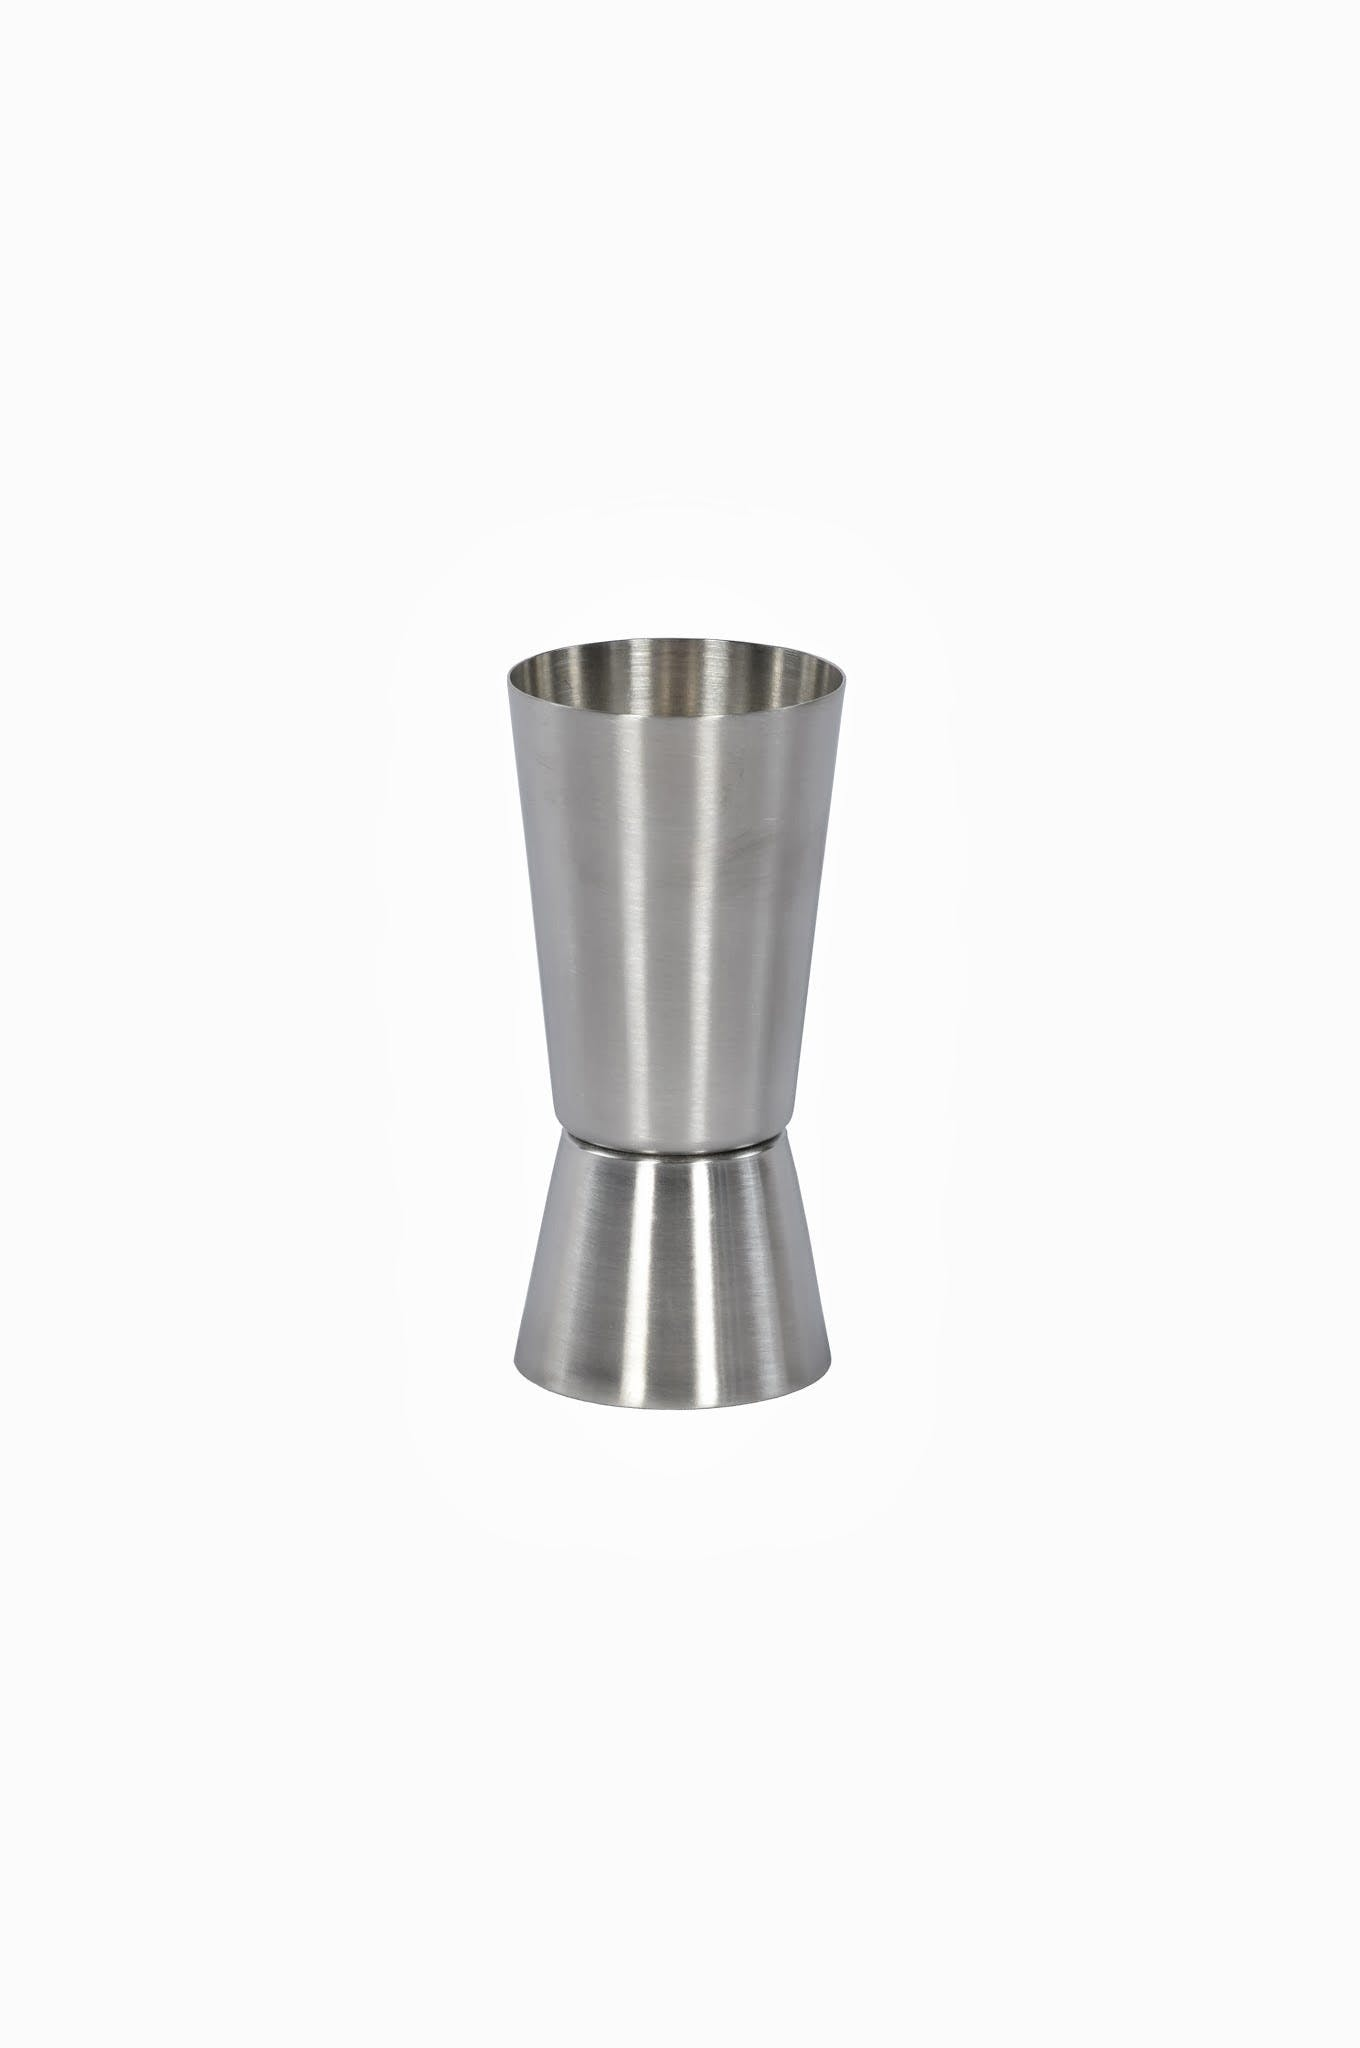 Stainless Steel Shot Glass Shot glass sold by Custom Copper Mugs, LLC